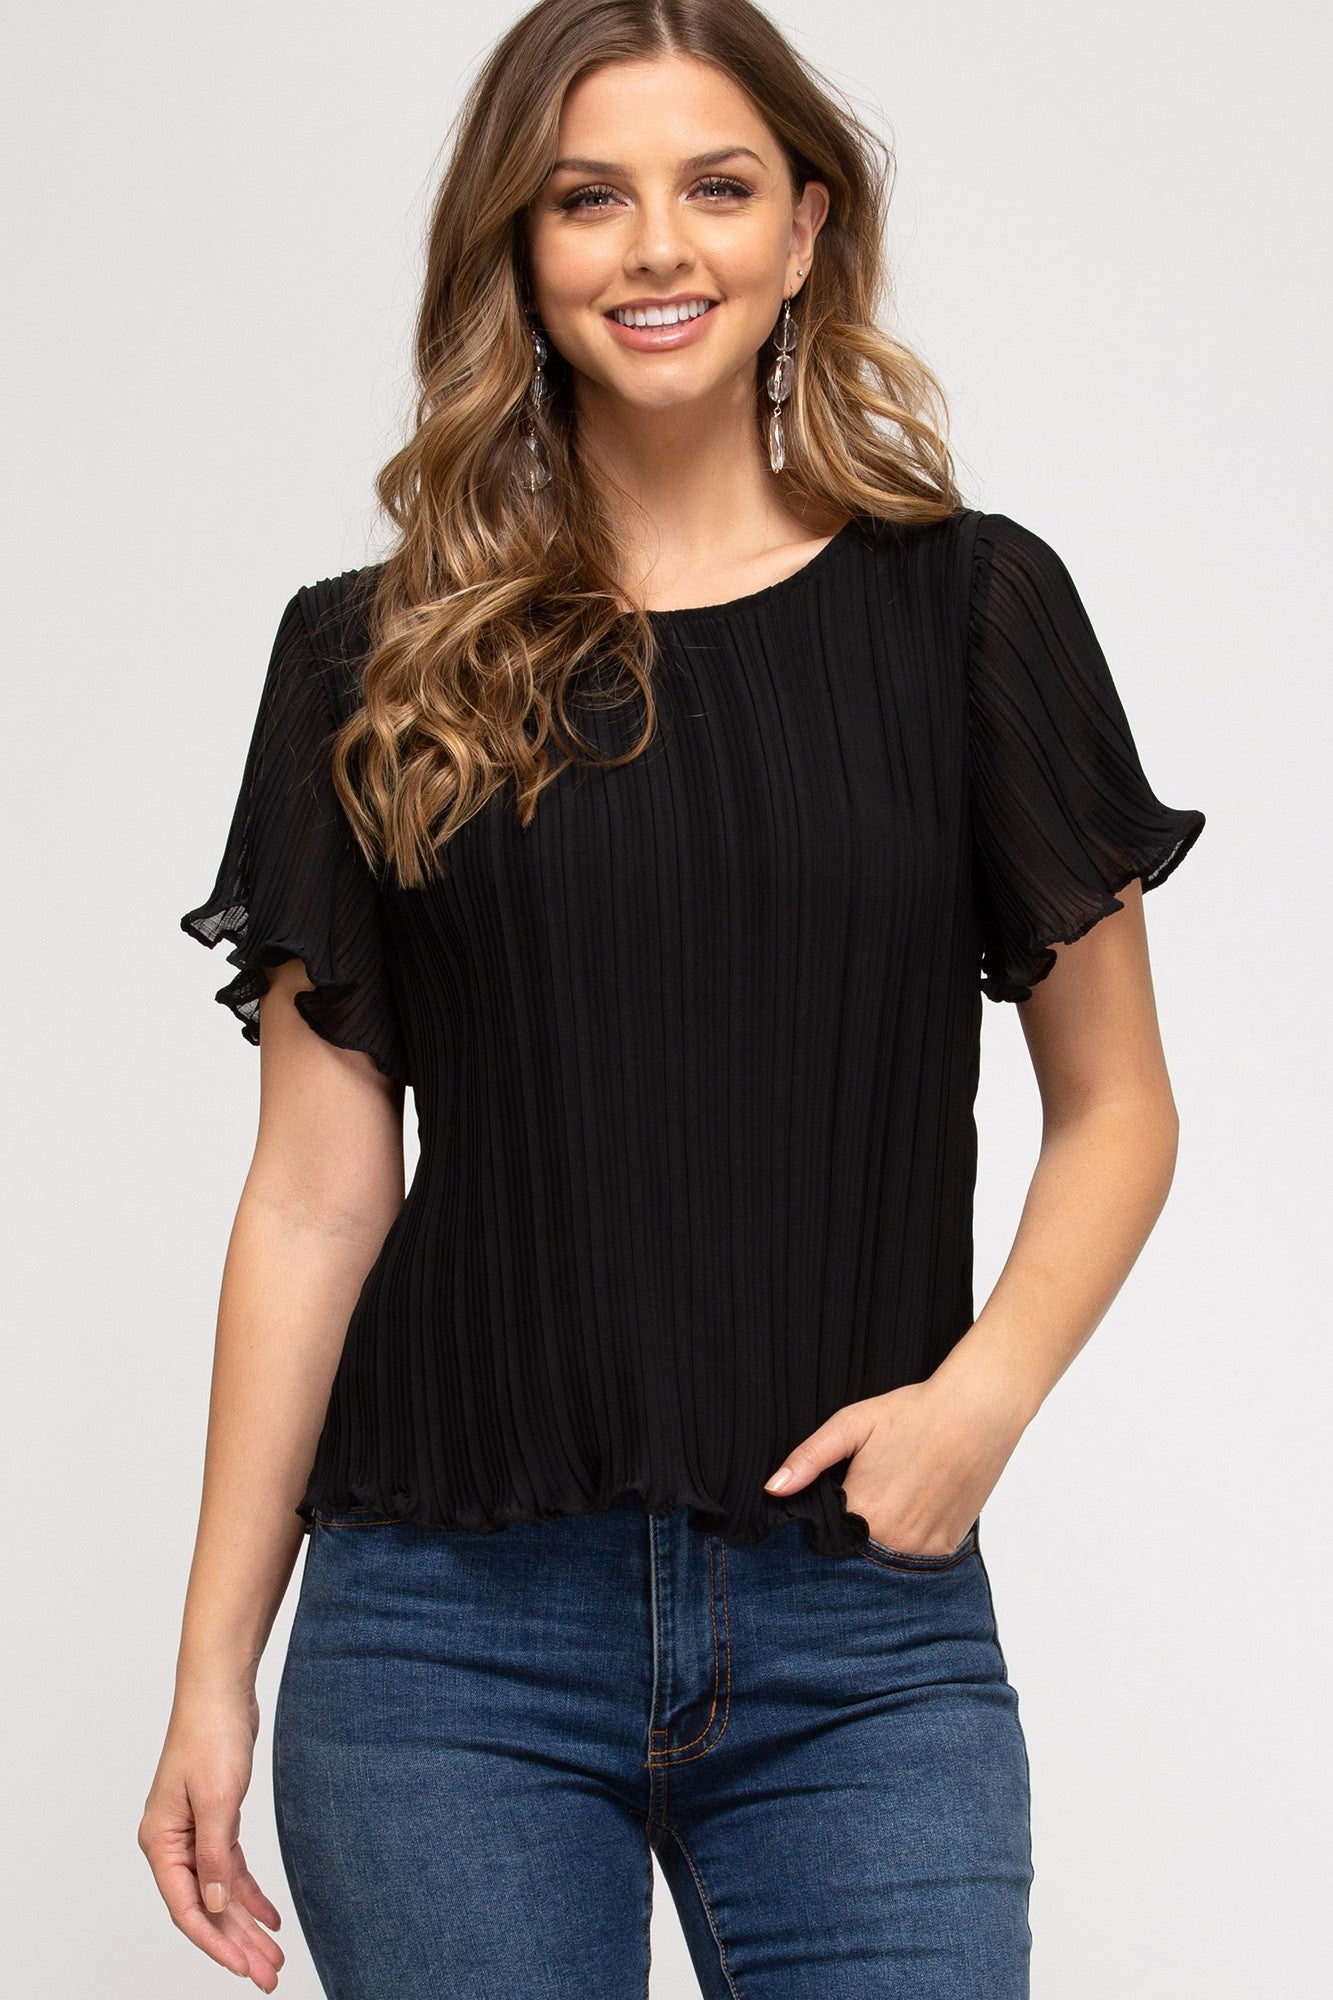 The 9 to 5 Black Top